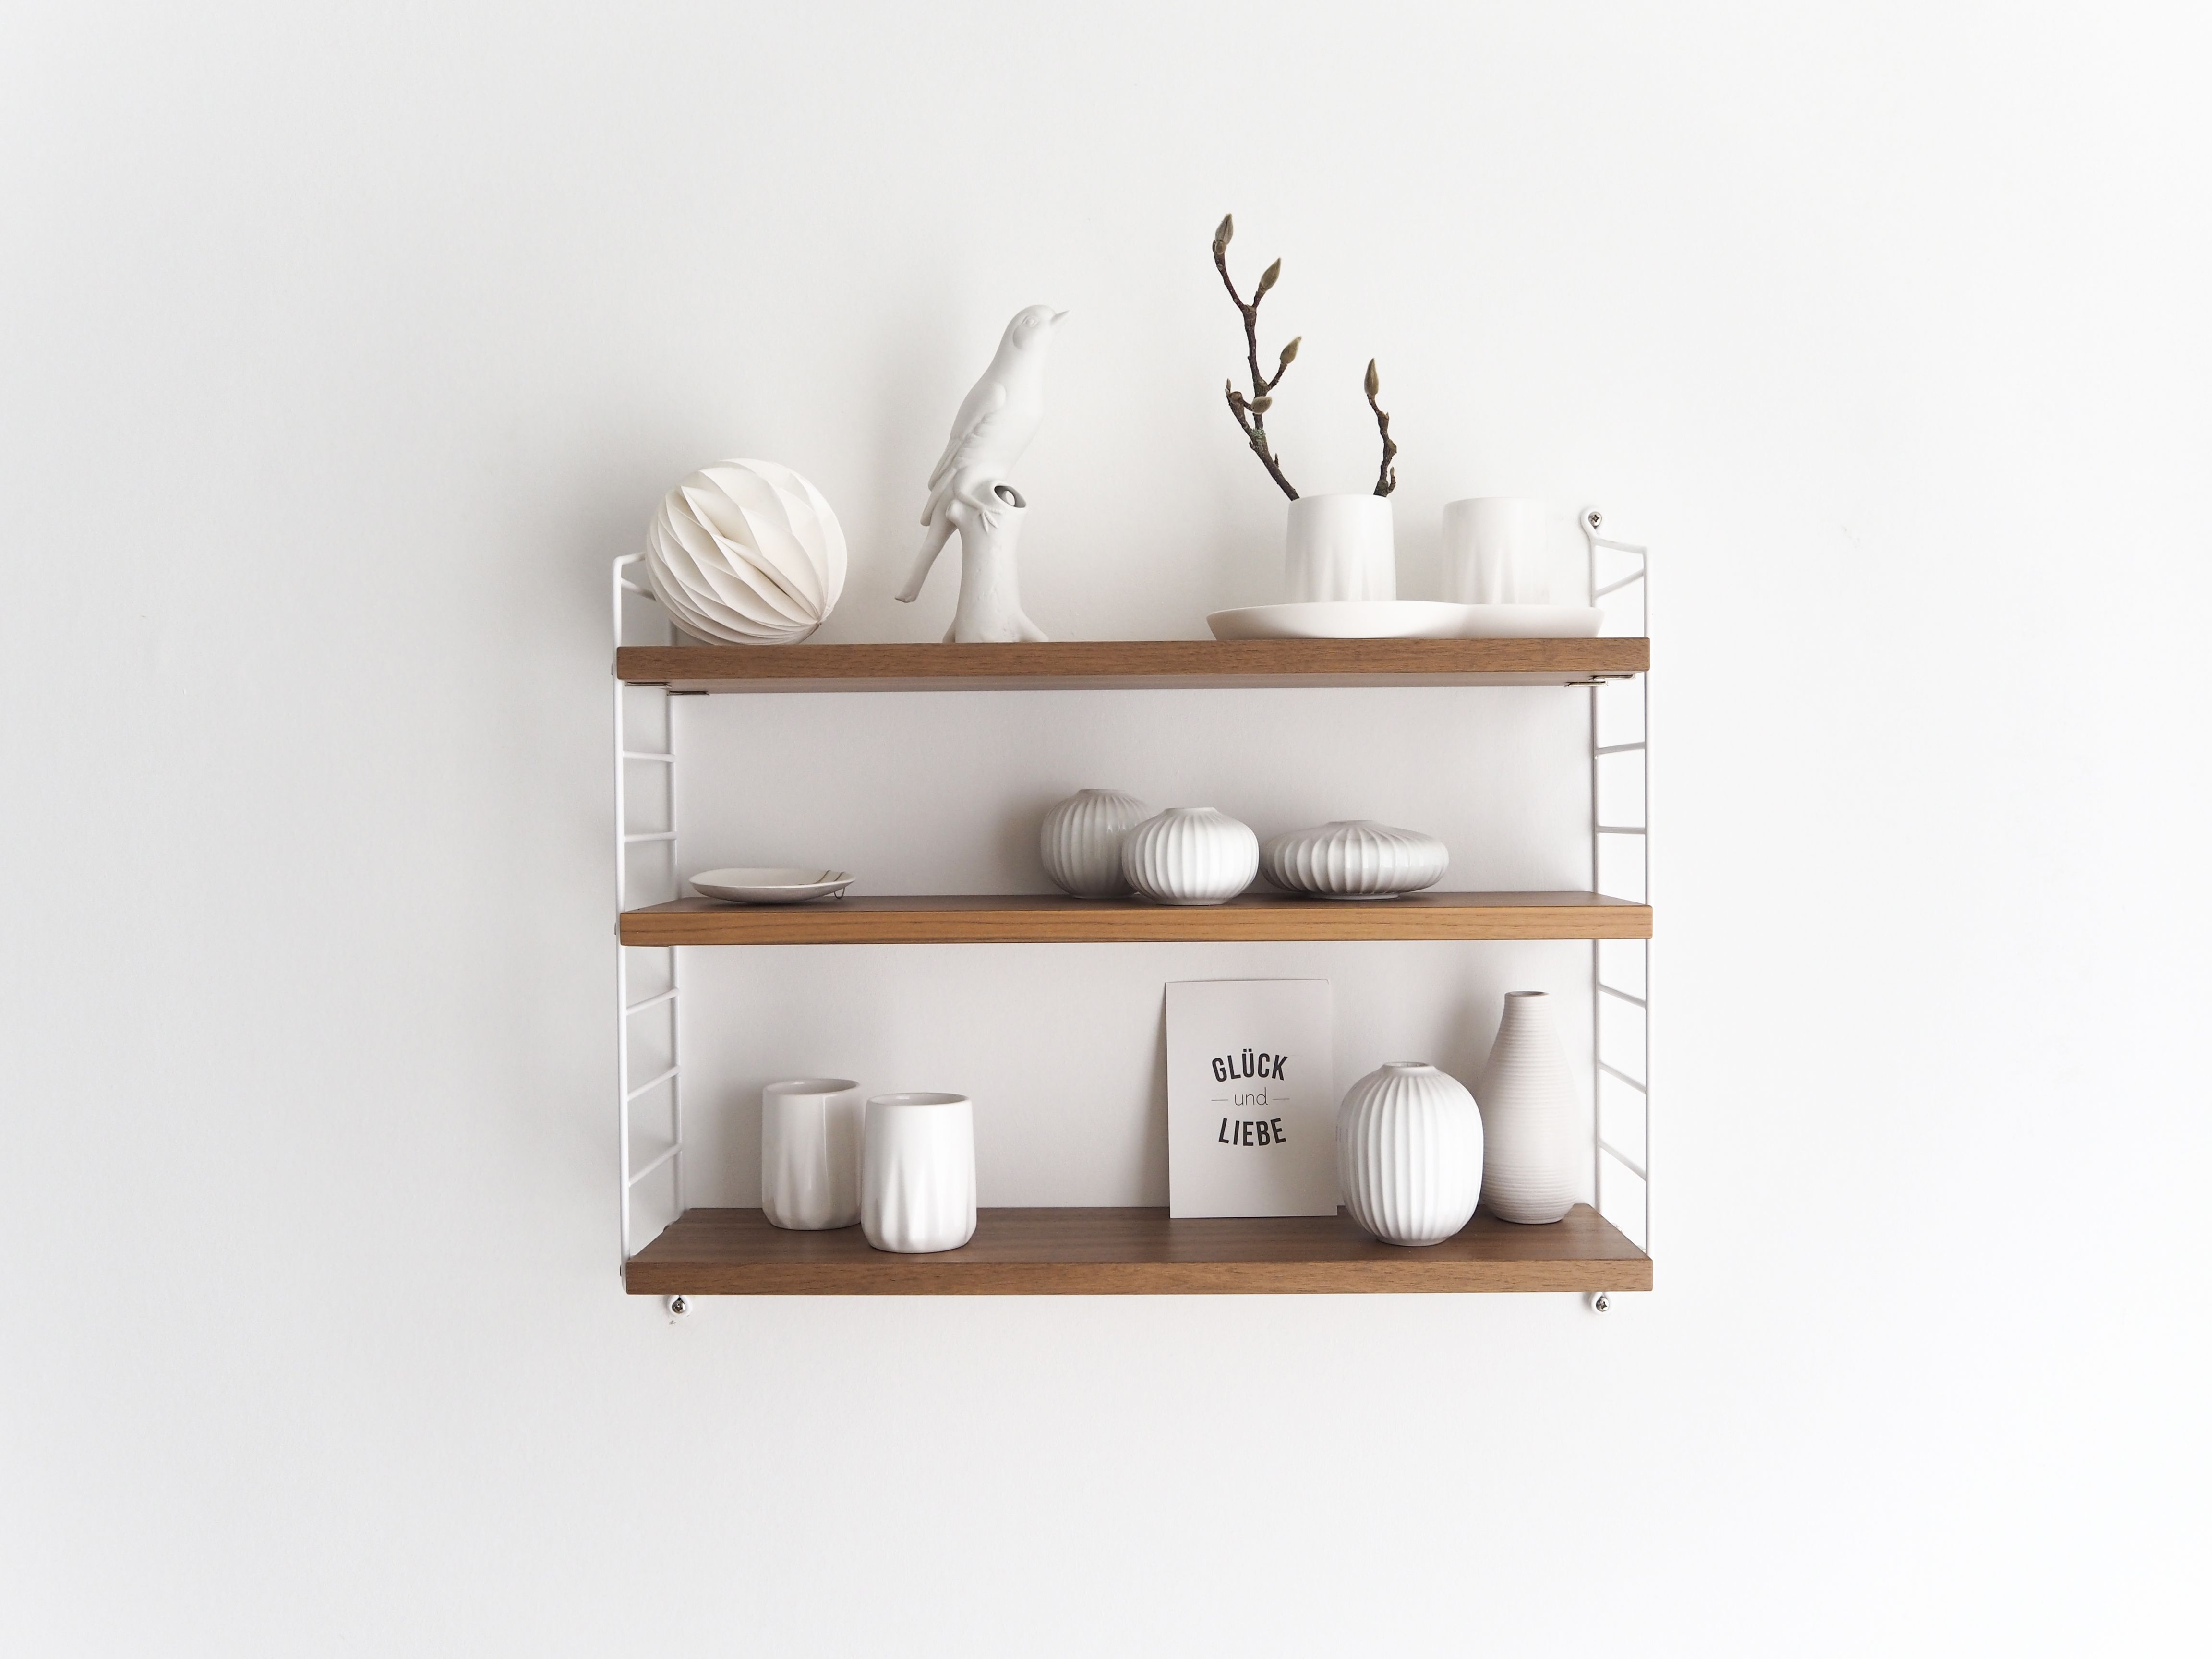 weie deko fr das string pocket regal shelfie regaldeko - Tolles Dekoration String Pocket Regal